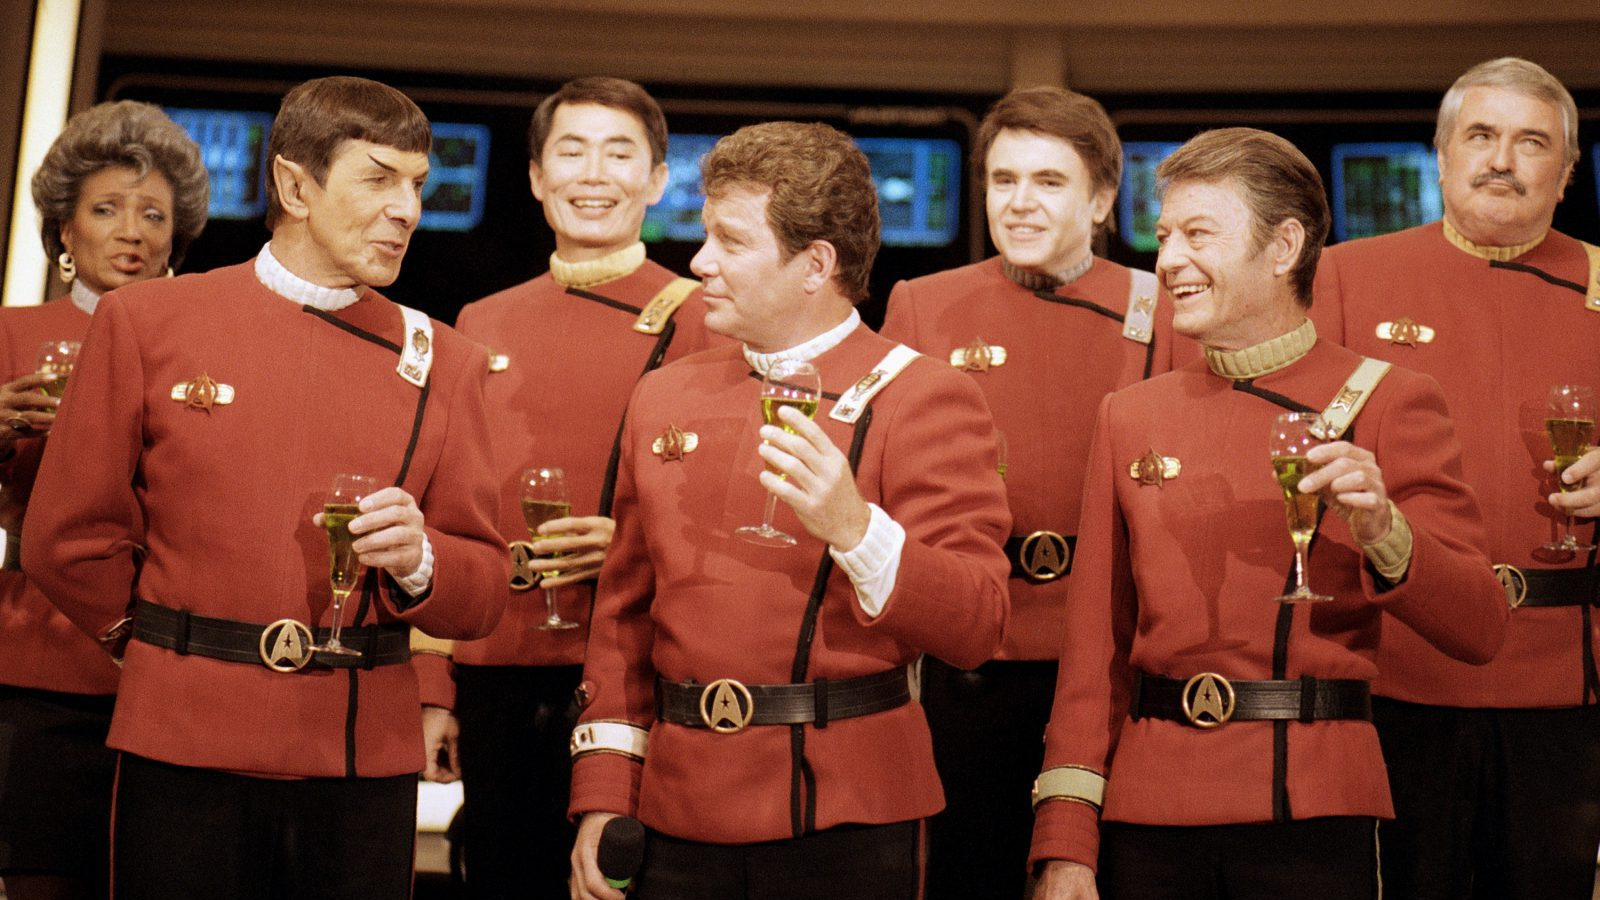 """Members of the """"Star Trek"""" crew, from right in front: DeForest Kelley, William Shanter and Leonard Nimoy, and back row from right: James Doohan, Walter Koenig, George Takei and Nichelle Nichols, toast the newest """"Trek"""" film--in which Shanter makes his directorial debut--""""Star Trek V: The Final Frontier,"""" during a news conference Dec. 28, 1988 at Paramount Studios to announce the latest voyage. (AP Photo/Bob Galbraith)"""